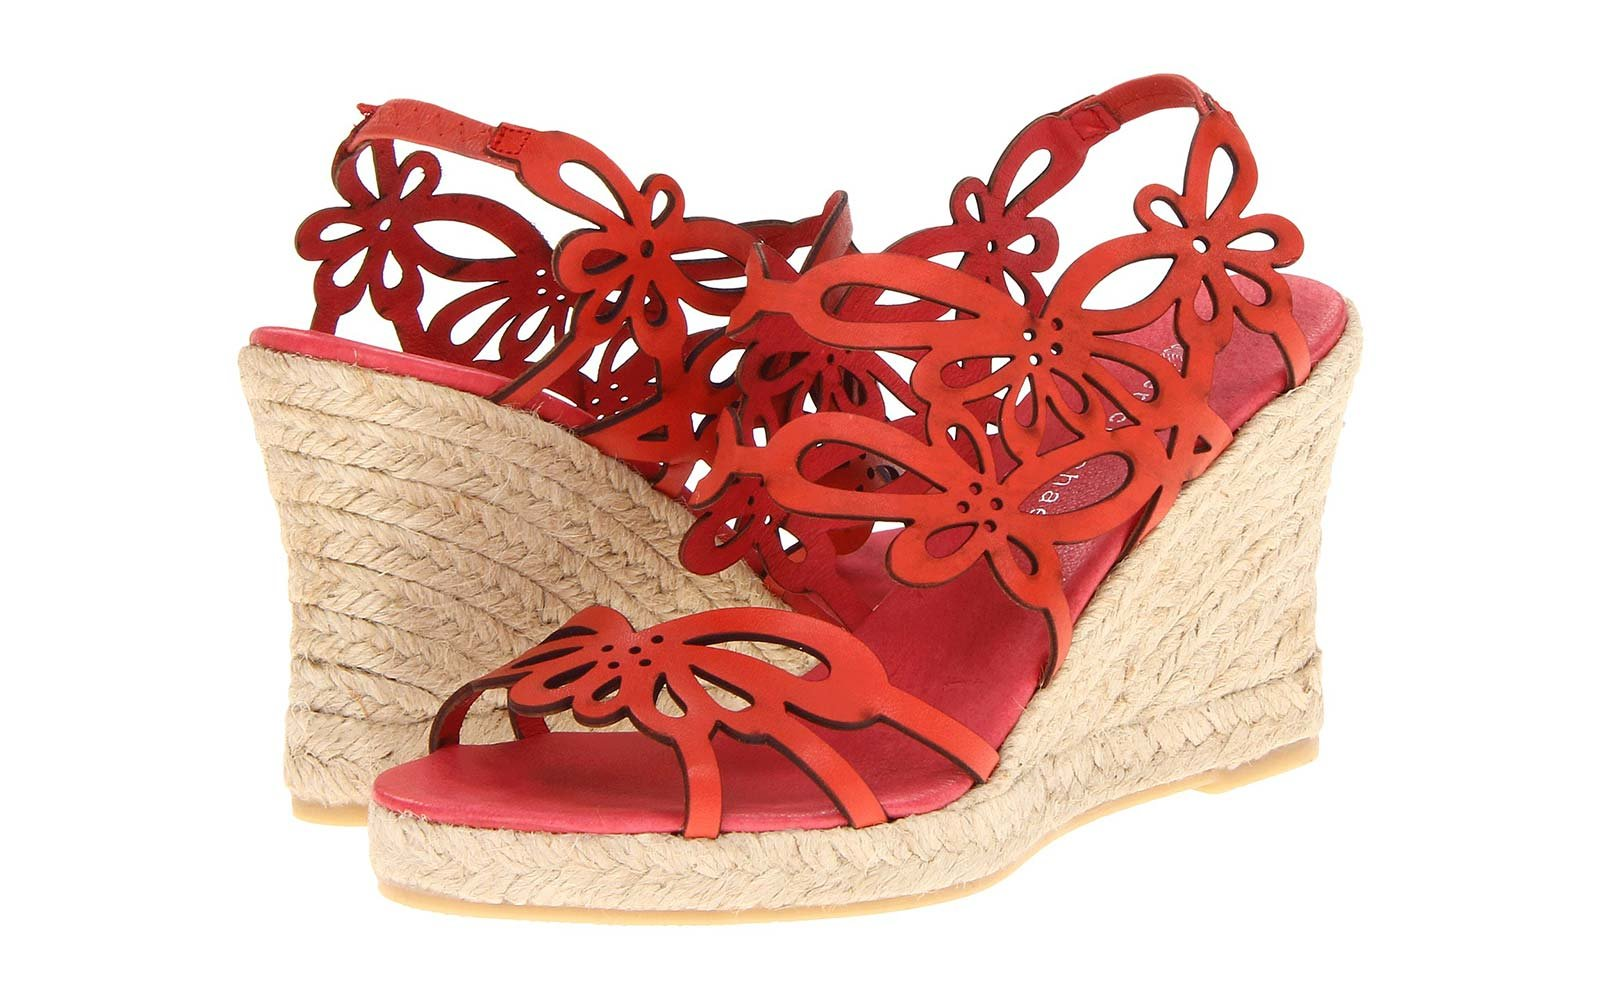 Eric Michael Jillian Wedges Espadrille